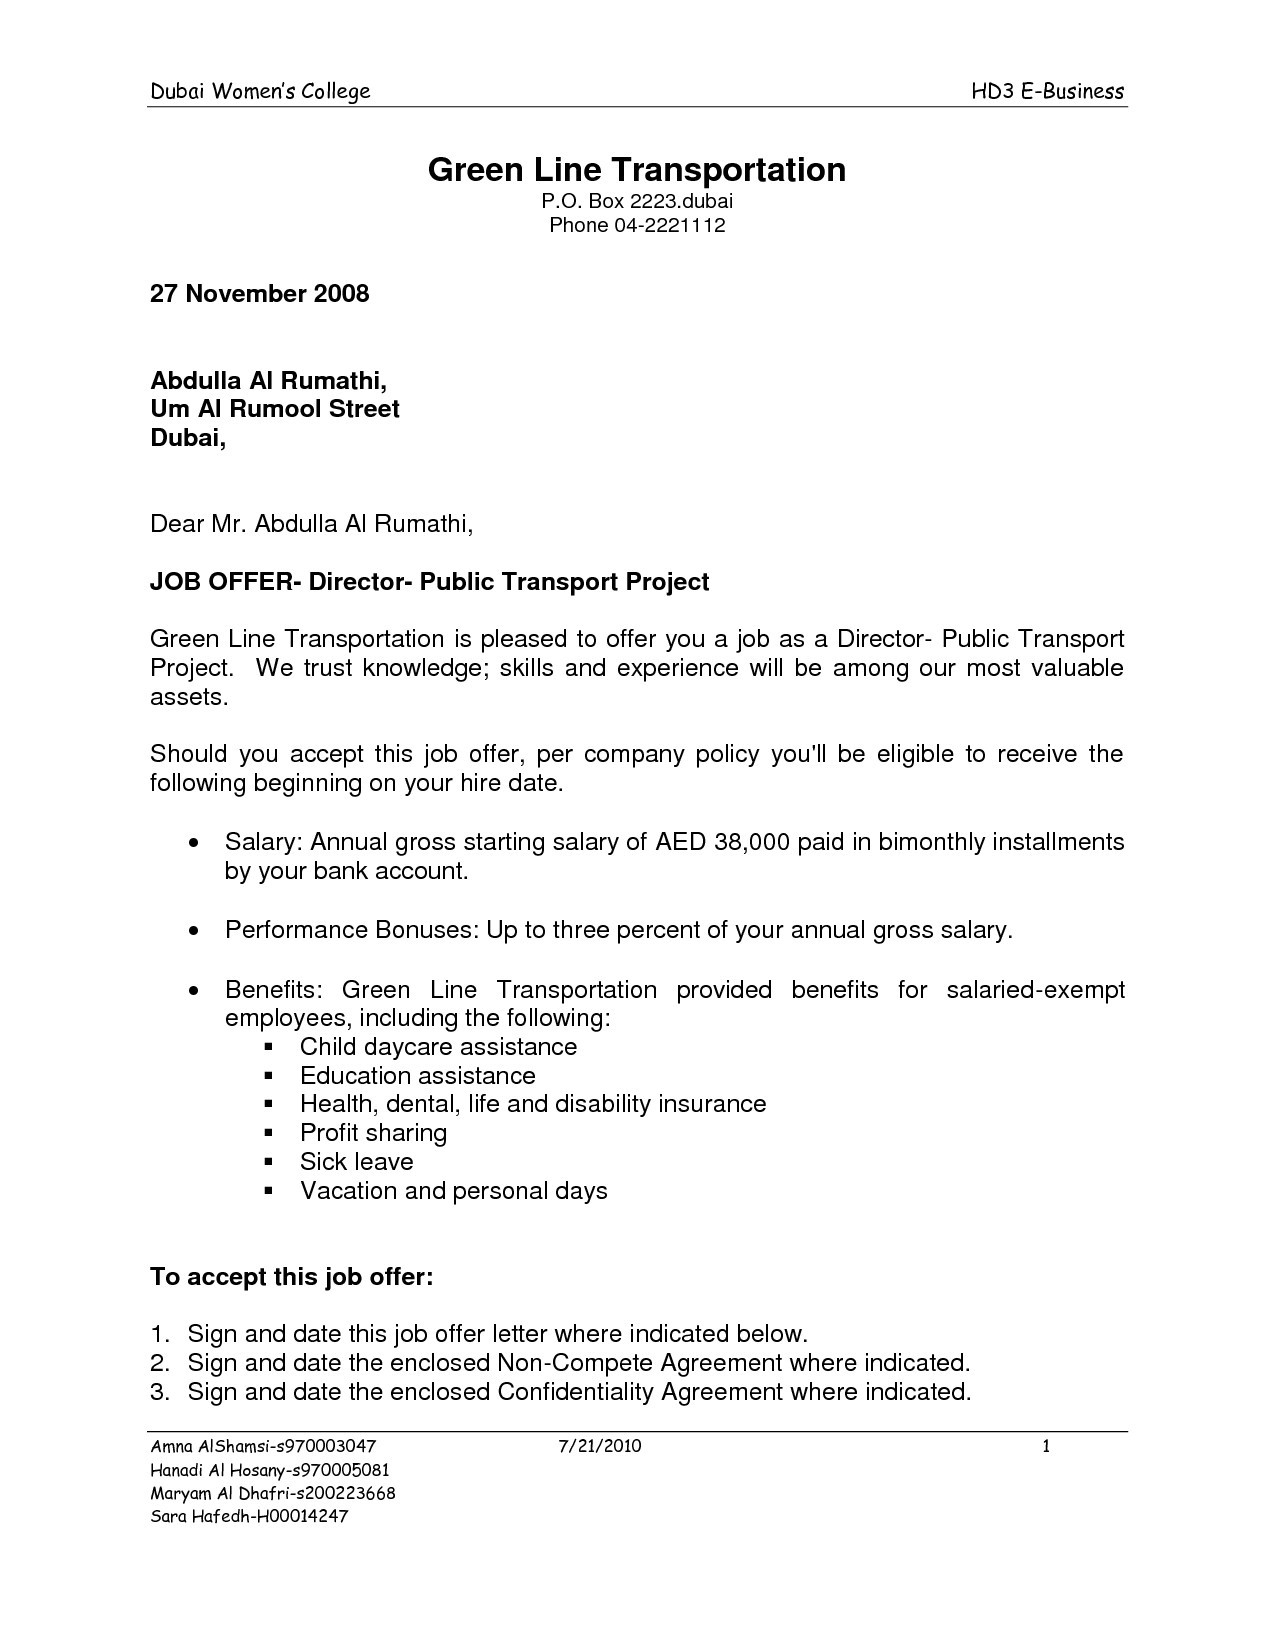 Exempt Offer Letter Template - Executive Job Fer Letter Sample Valid Job Fer Letter Template Us